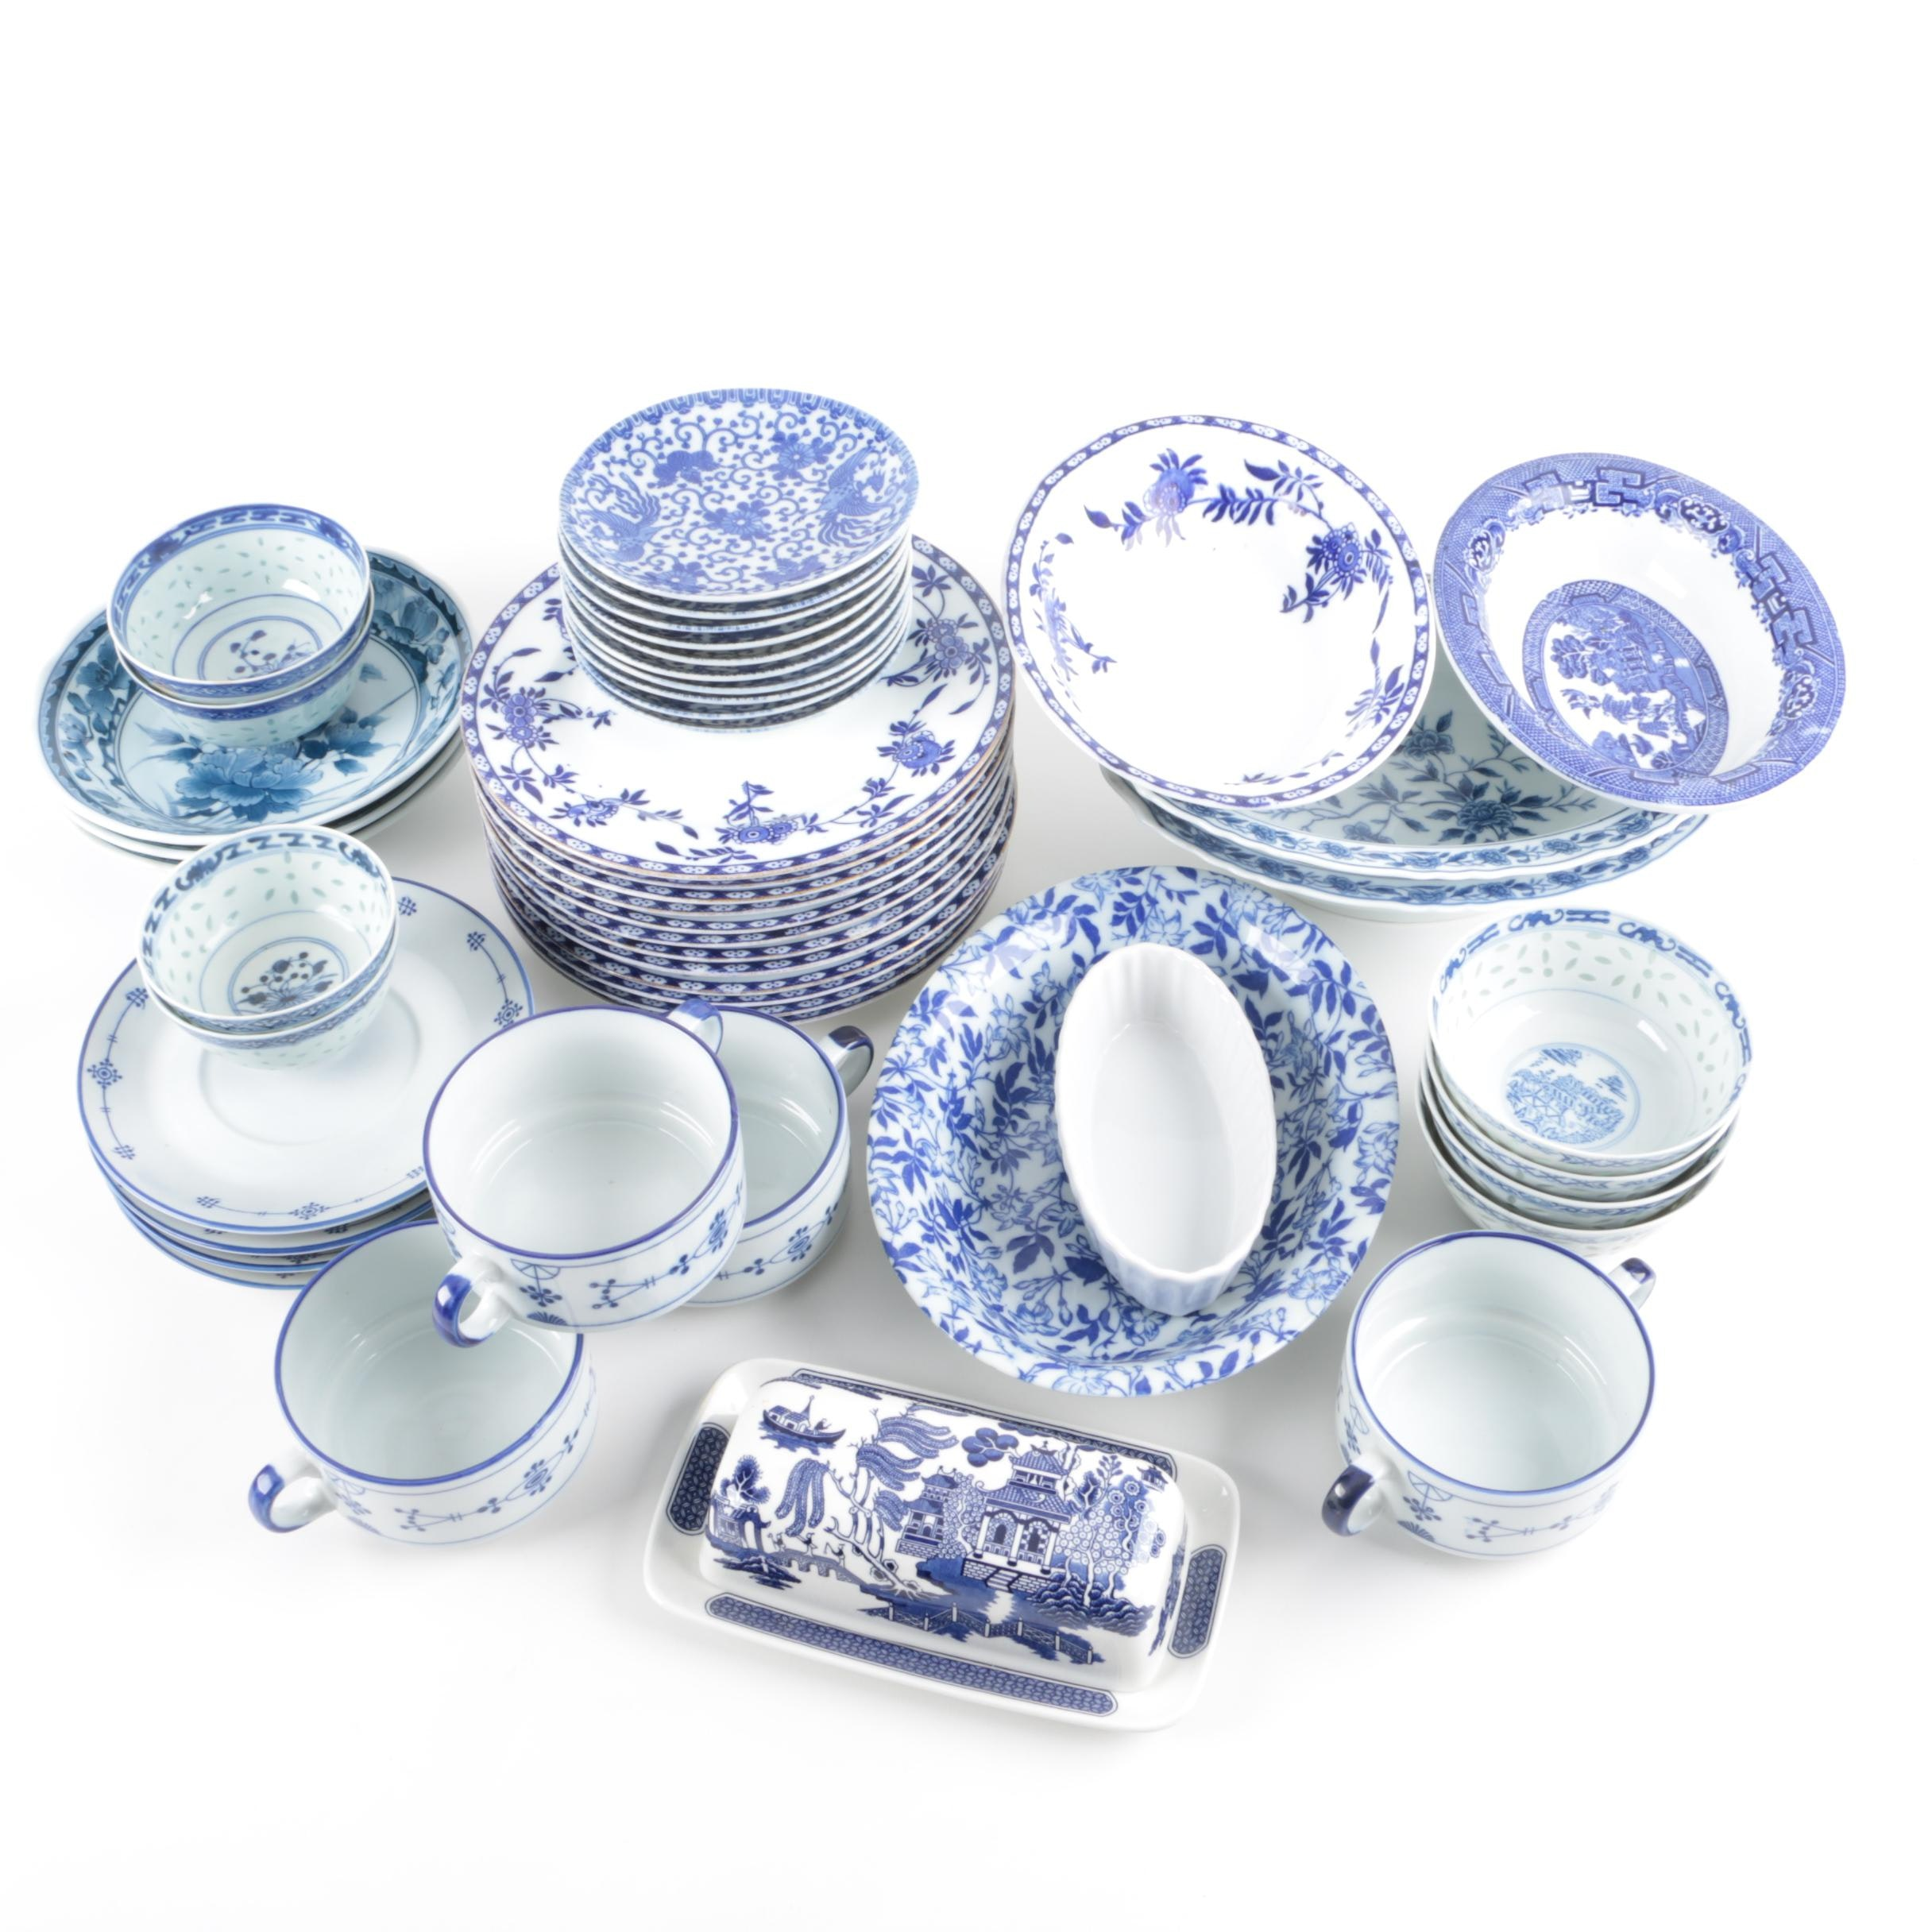 Vintage and Modern Blue and White Patterned Tableware Including Adderley